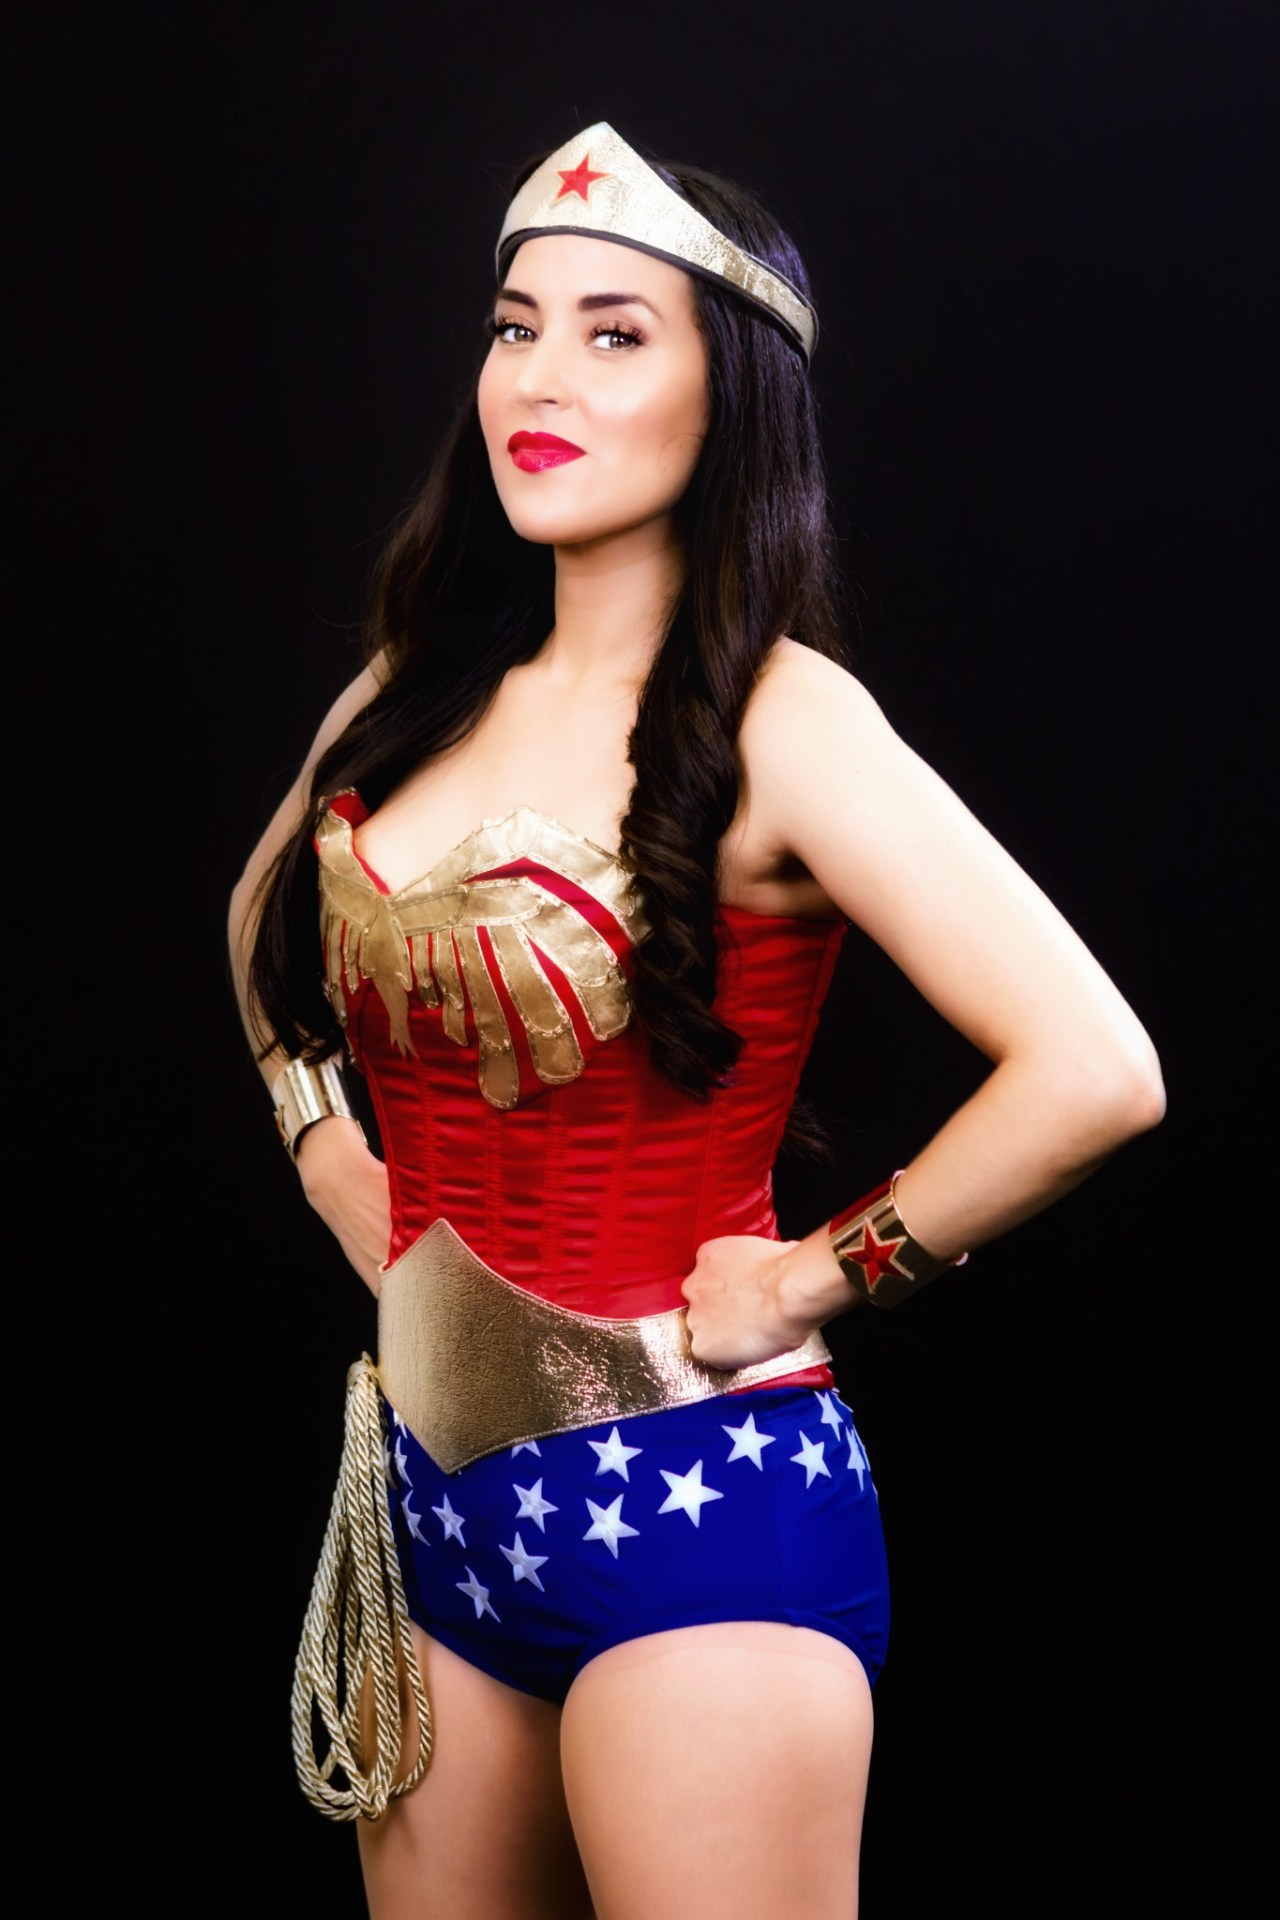 WonderWomanBurgs